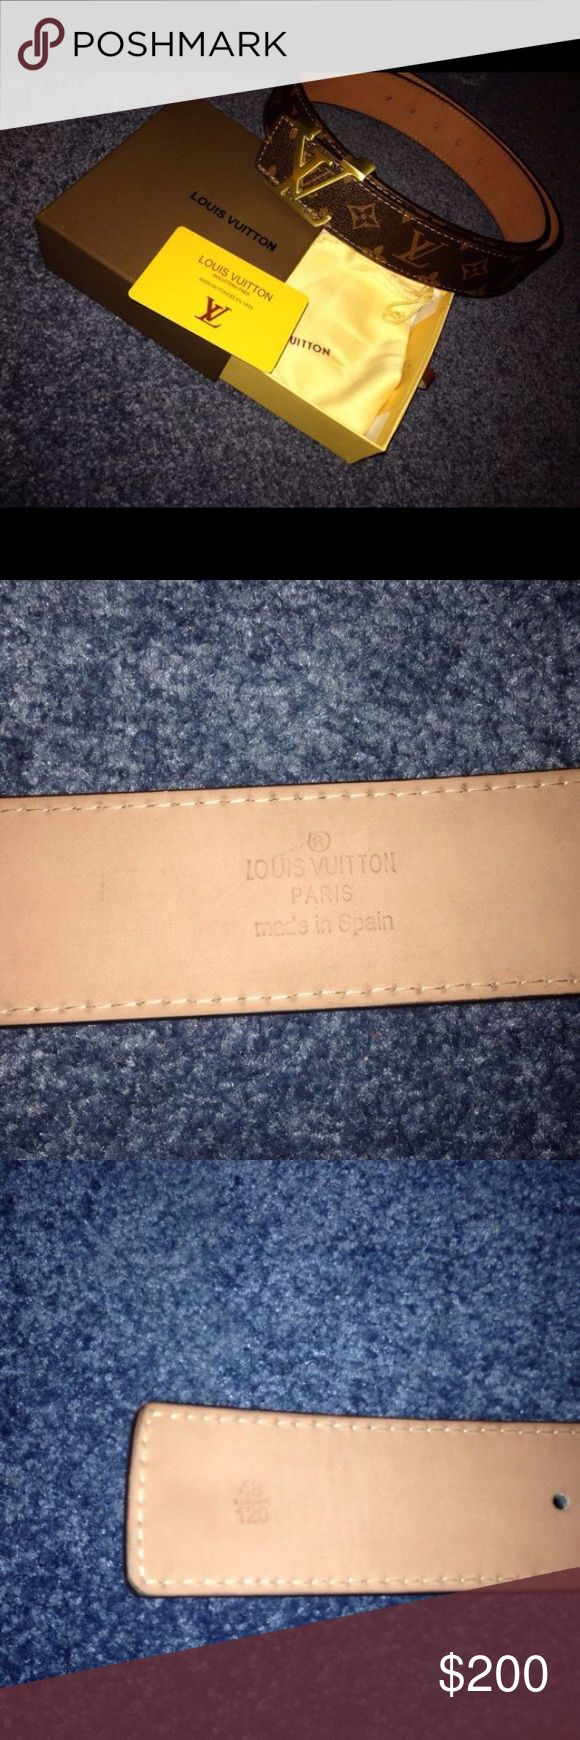 A real Louis Vuitton belt It's authentic comes with bag cover box and certificate card Louis Vuitton Accessories Belts